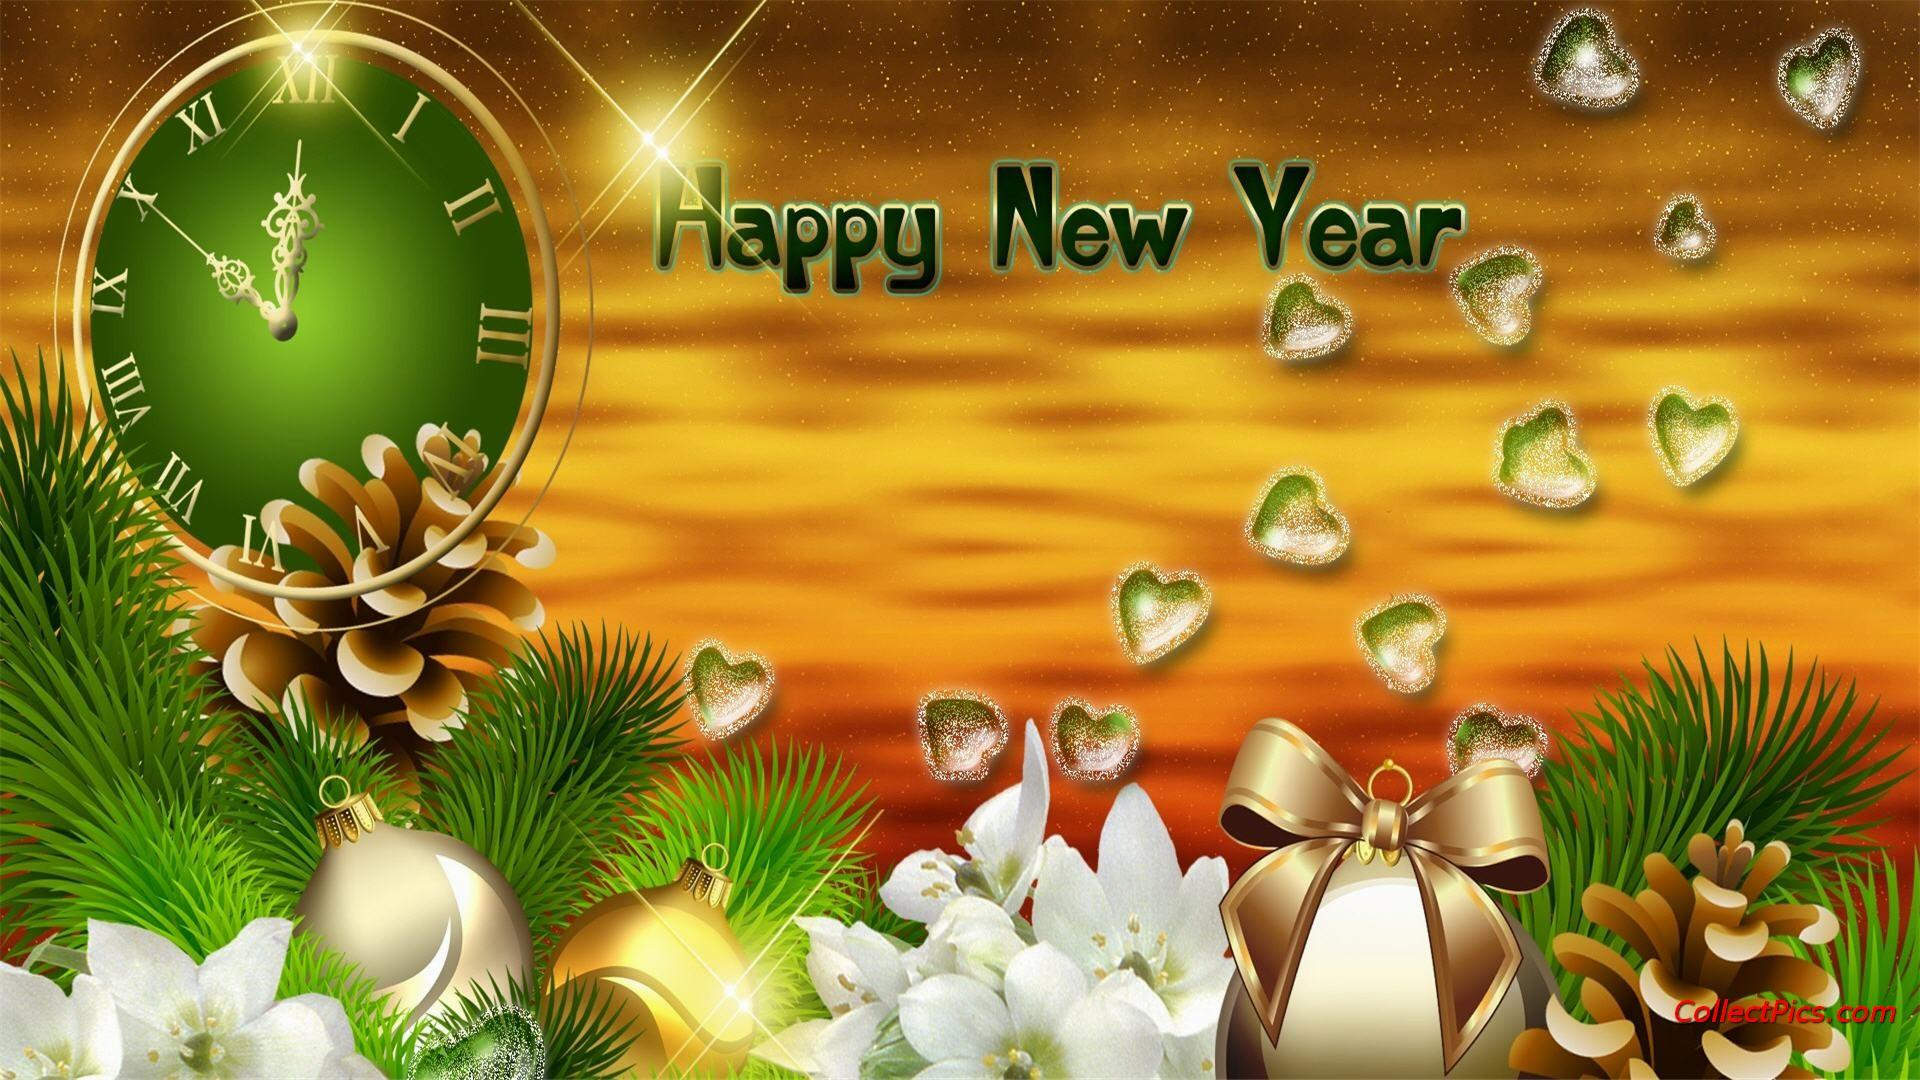 Beautiful HD Wallpapers For Happy New Year 2020 Download 1920x1080